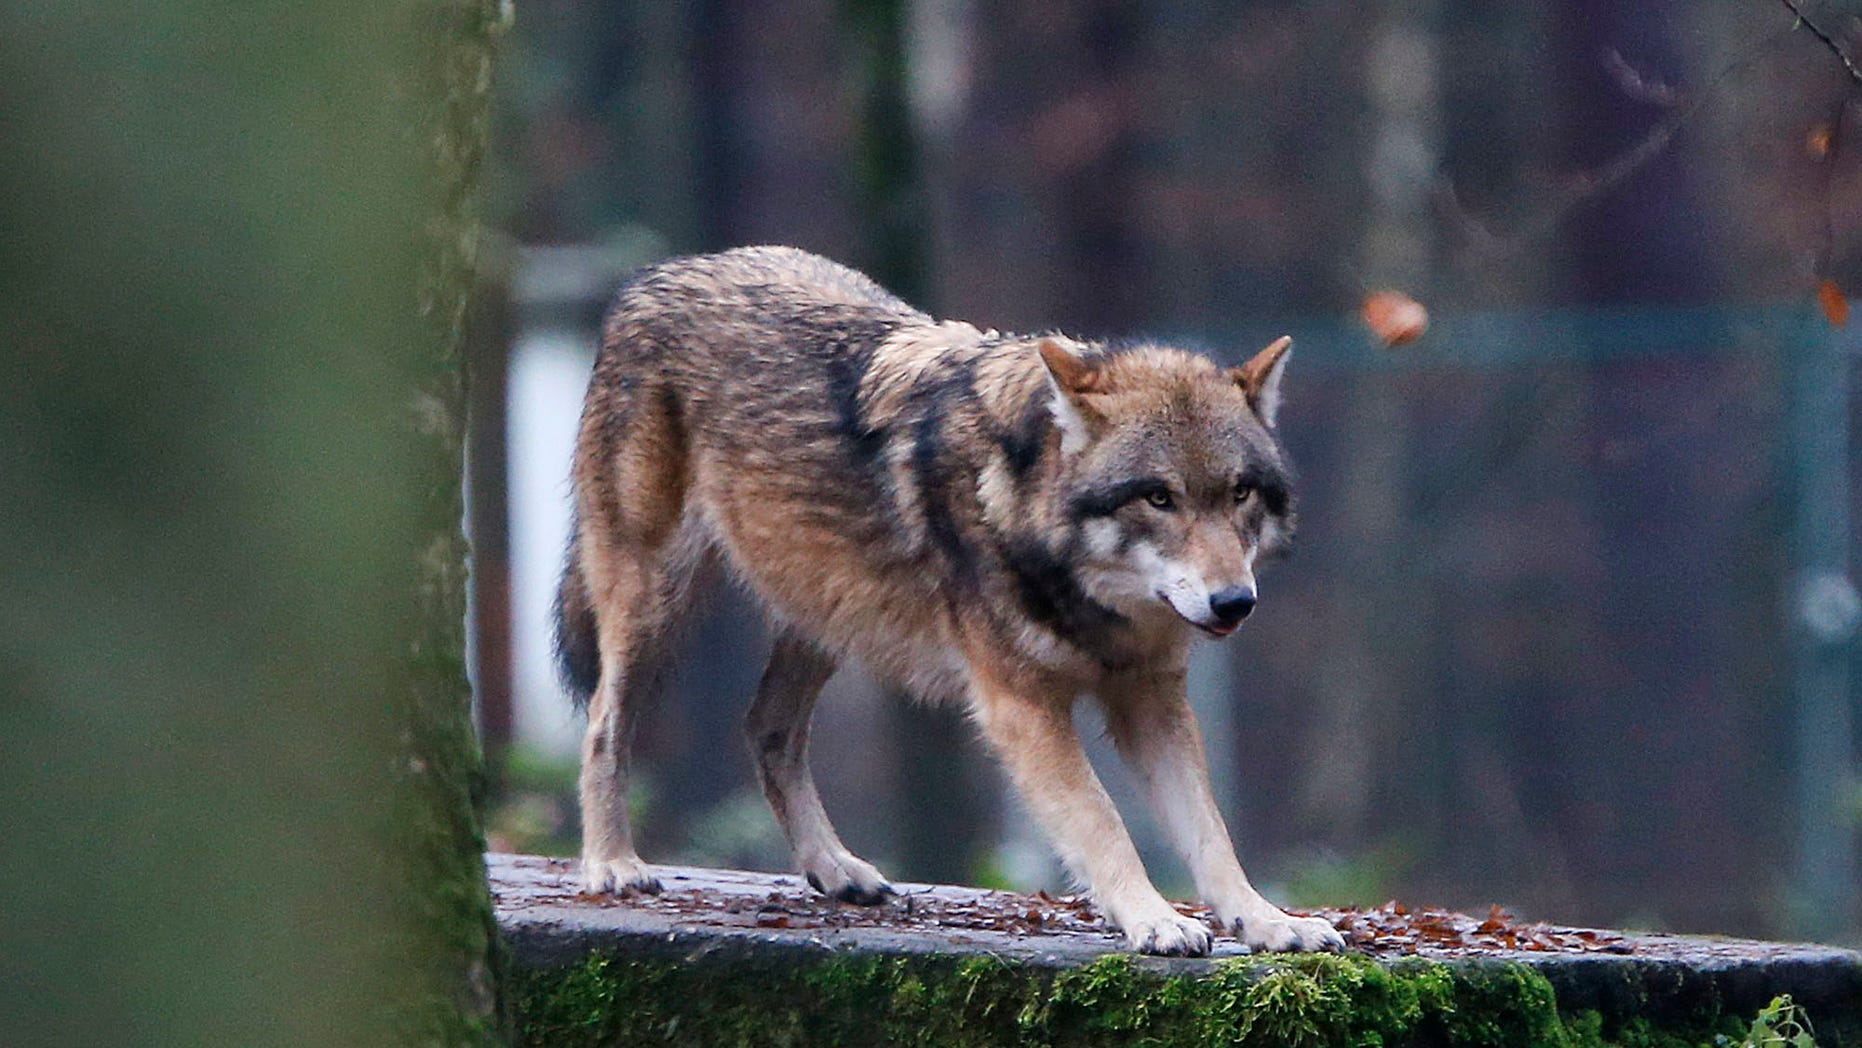 In this photo taken Thursday, Dec. 18, 2014, a European wolf is pictured in a wildlife park in Hanau, Germany. Scientists studying populations of bears, wolves, Eurasian lynx and wolverines found they have flourished on the continent, decades after being driven almost to extinction by hunting and the destruction of their habitat.  (AP Photo/Michael Probst)